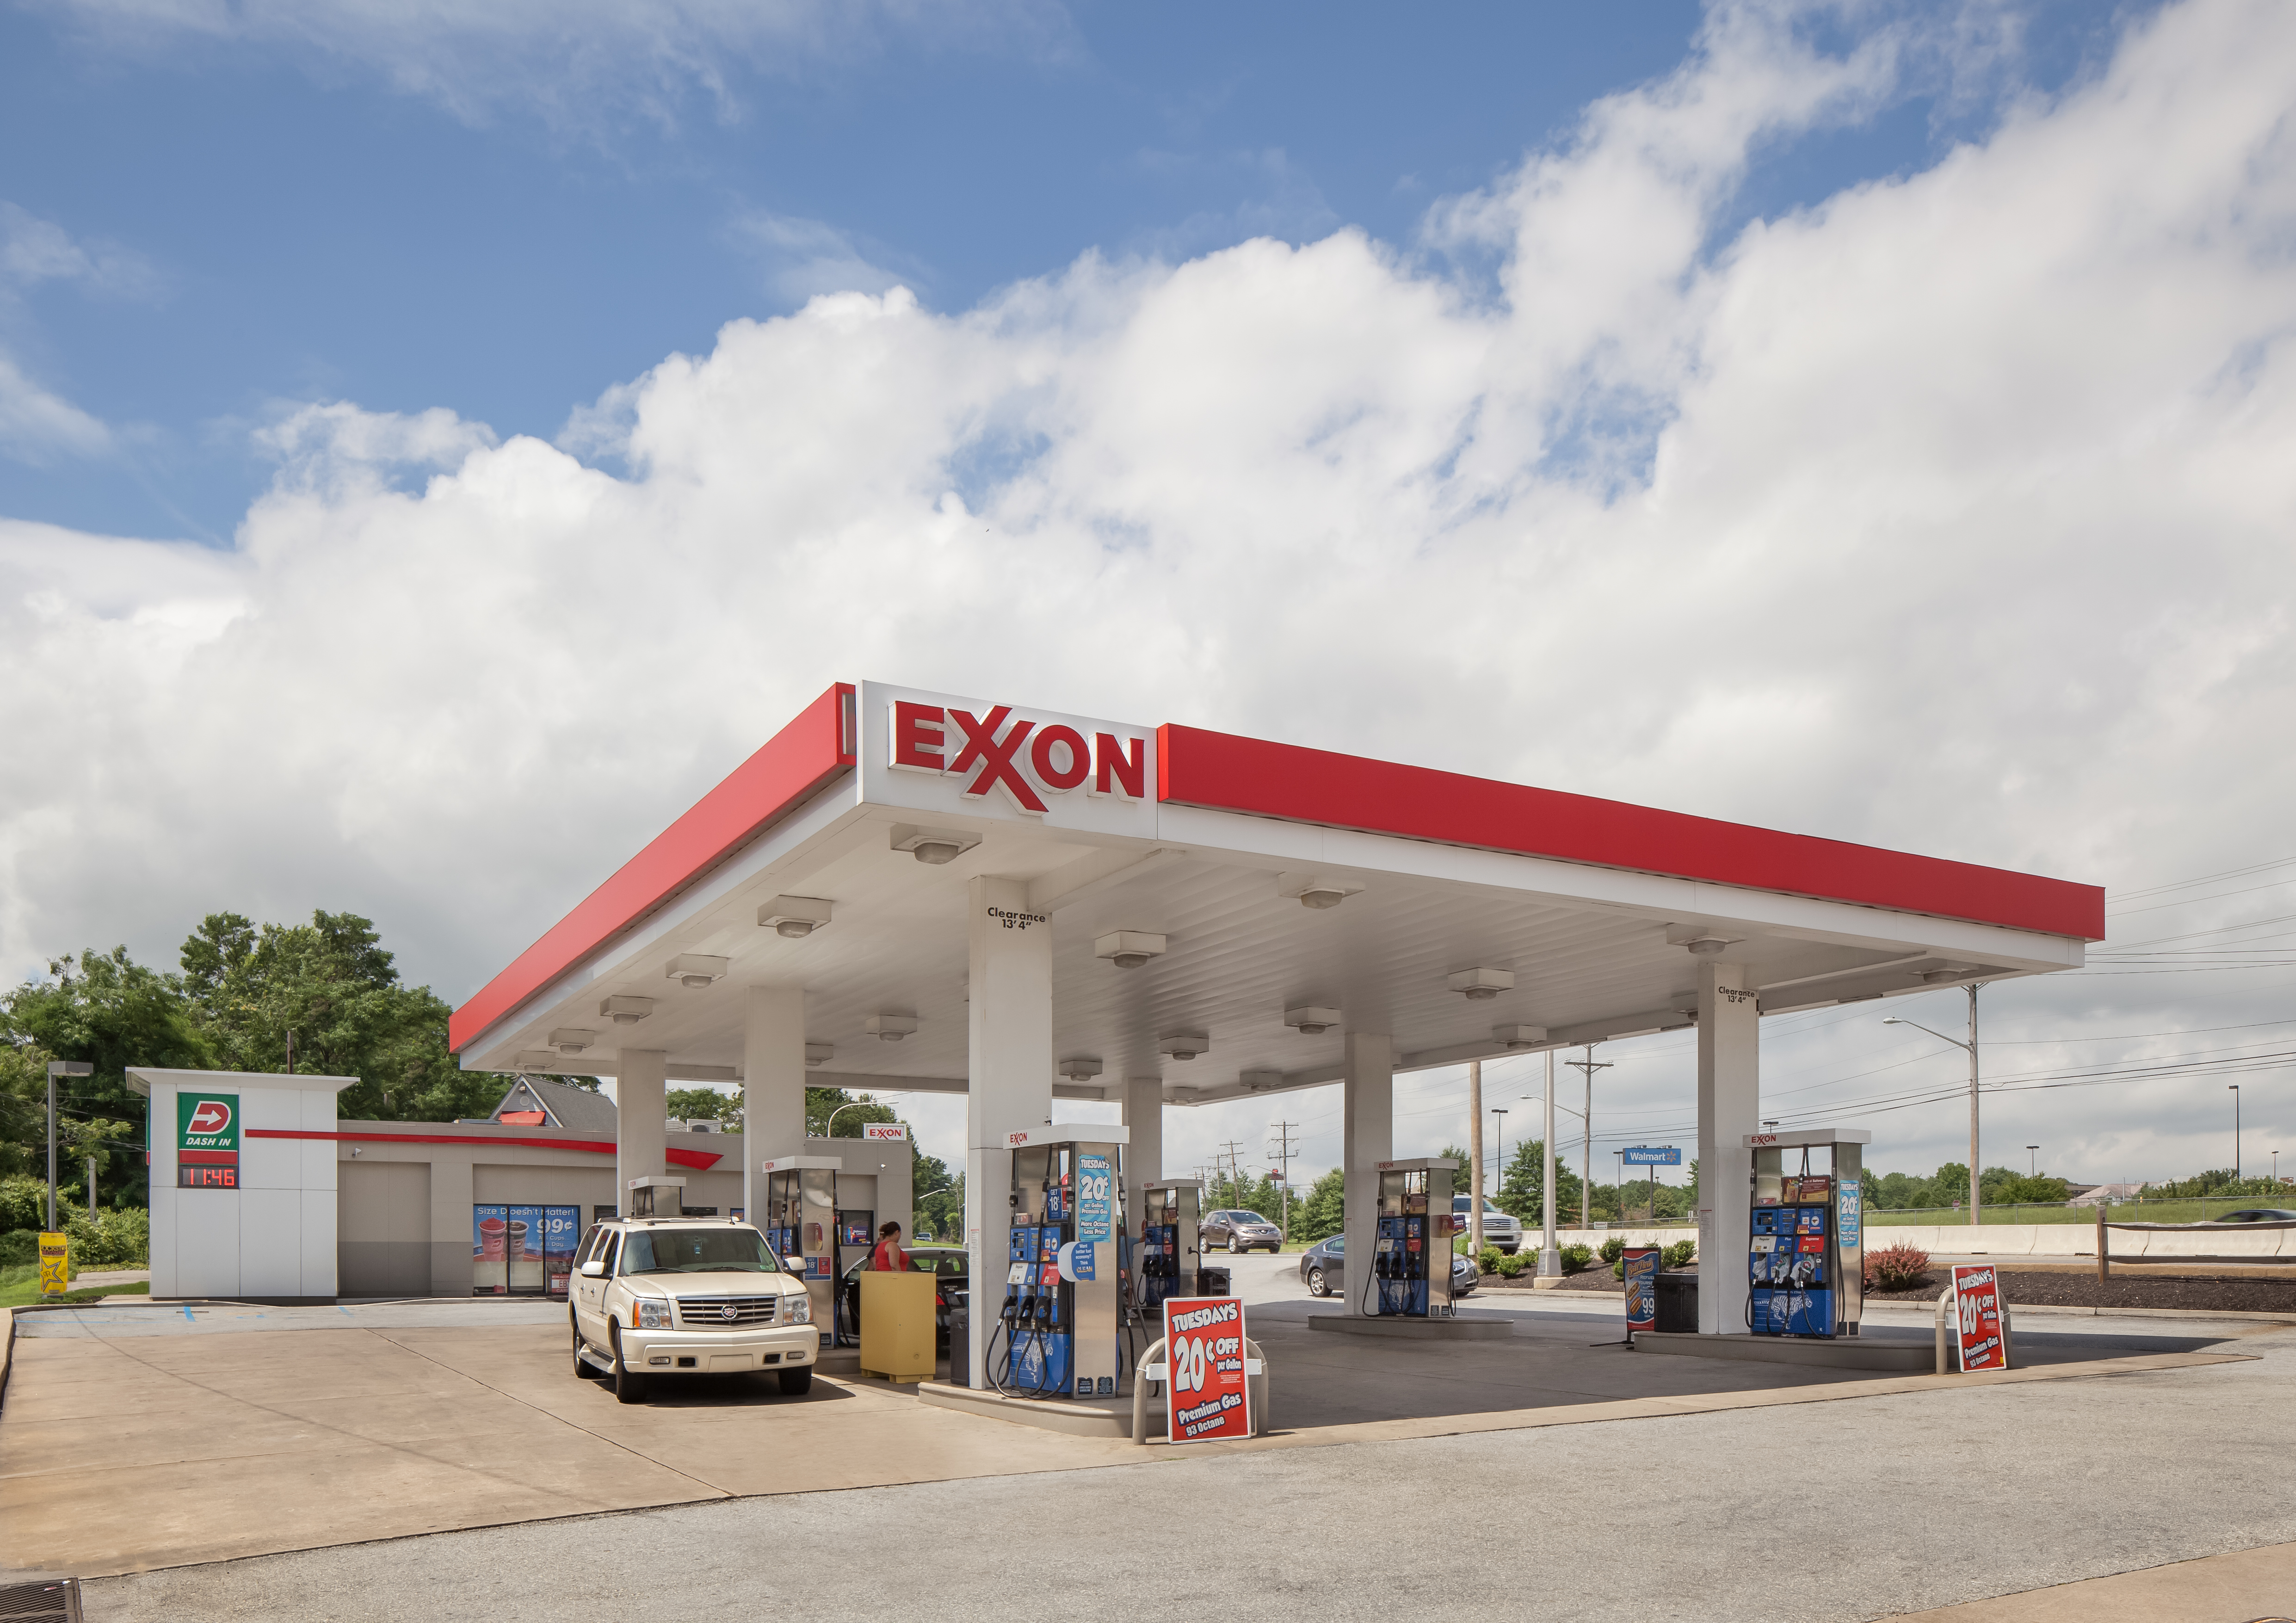 Wawa Gas Prices Near Me >> Exxon Coupons near me in New Castle, DE 19720 | 8coupons